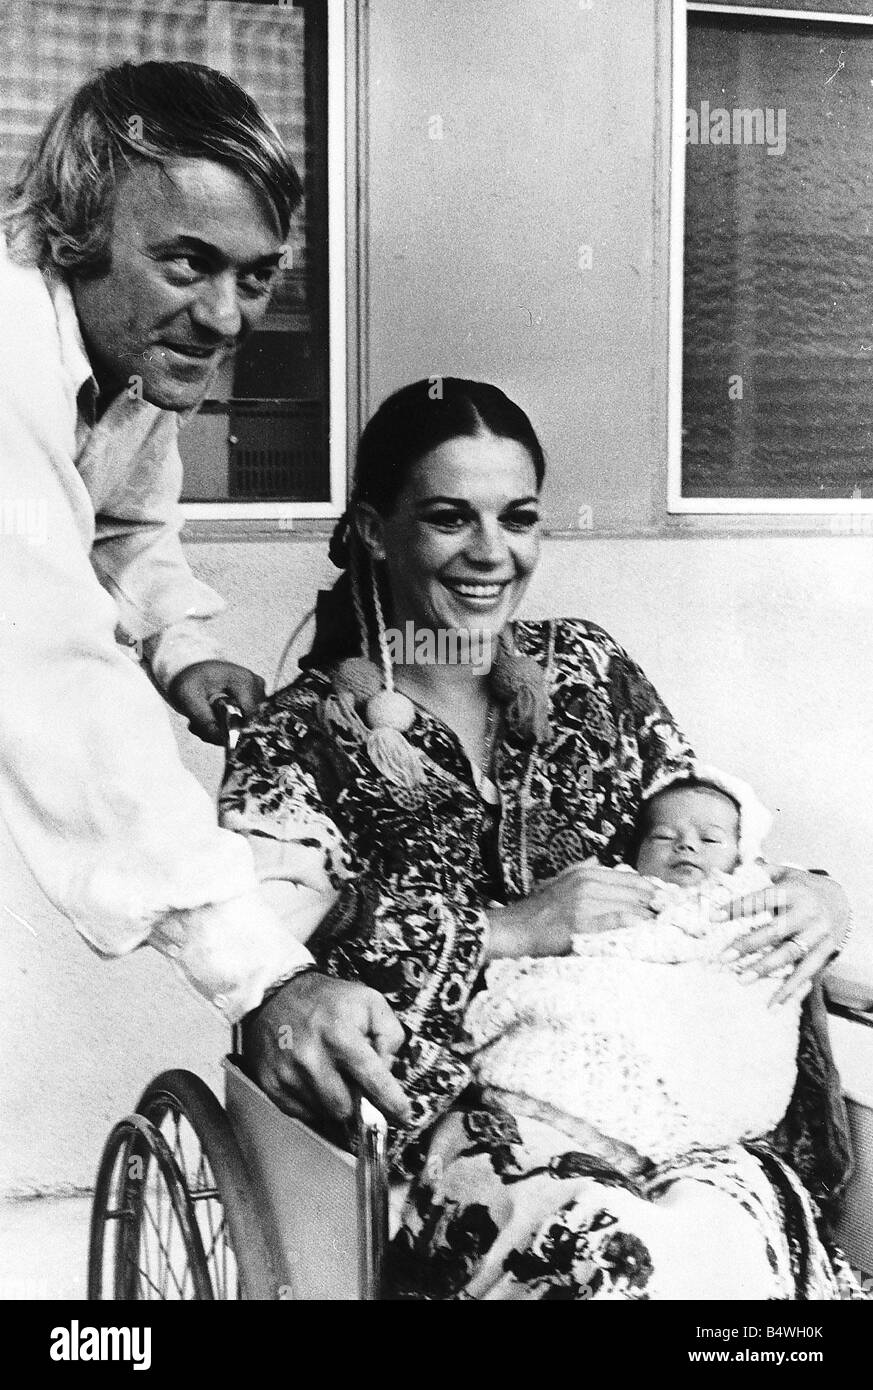 natalie wood leaving hospital with her newly born daughter